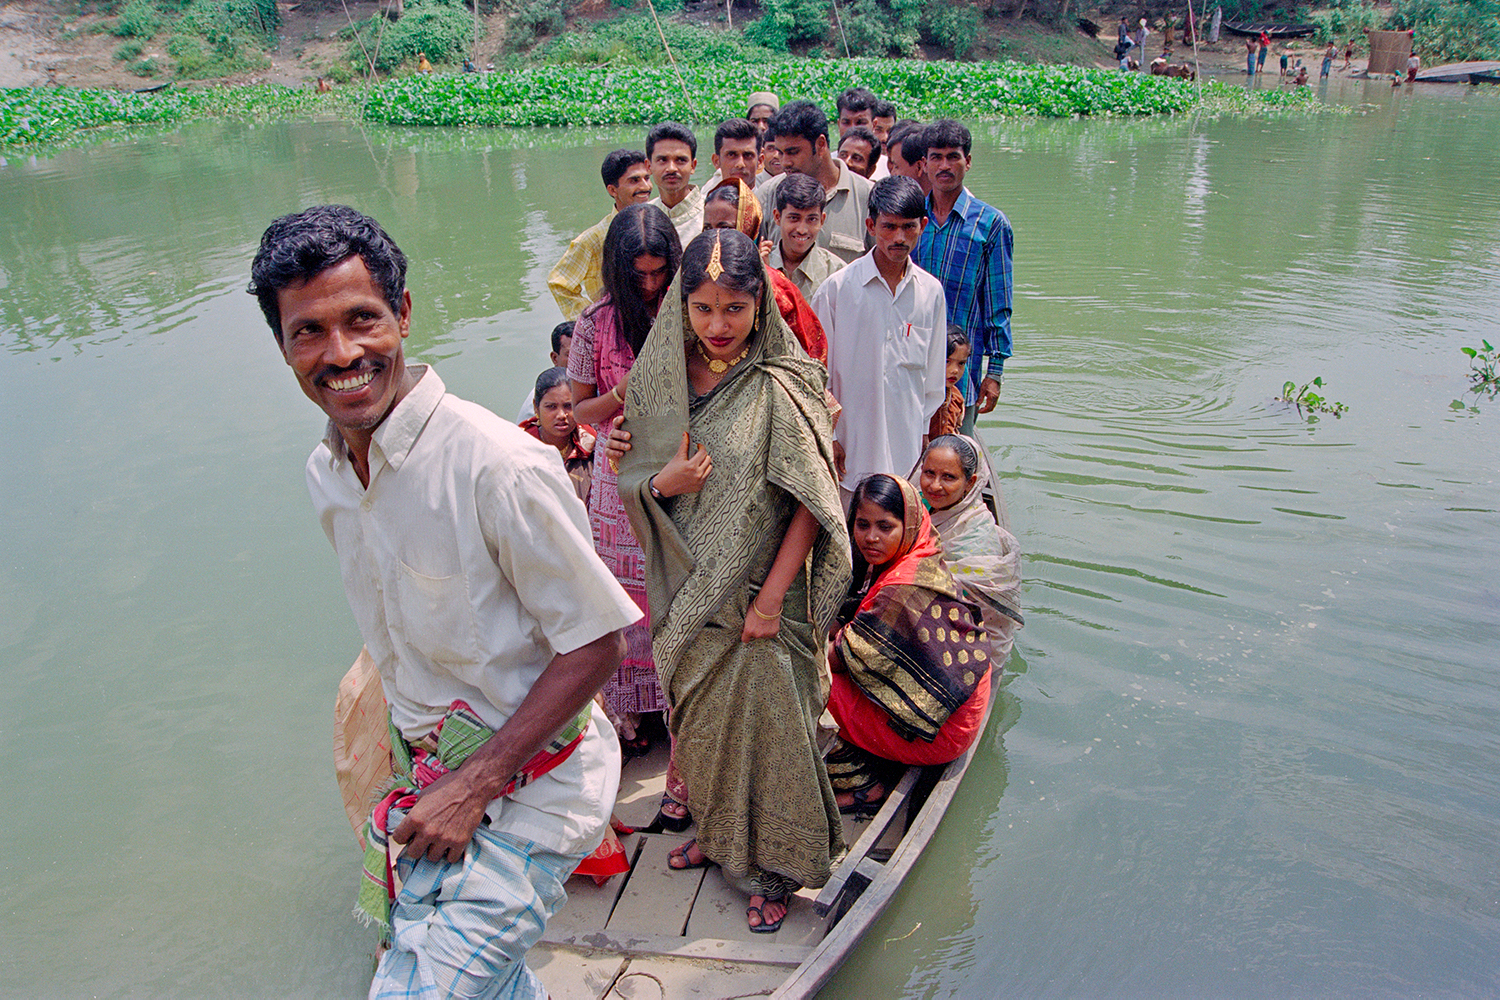 Boatman brings wedding party to riverbank in Narayanganj, Bangladesh, 2004.